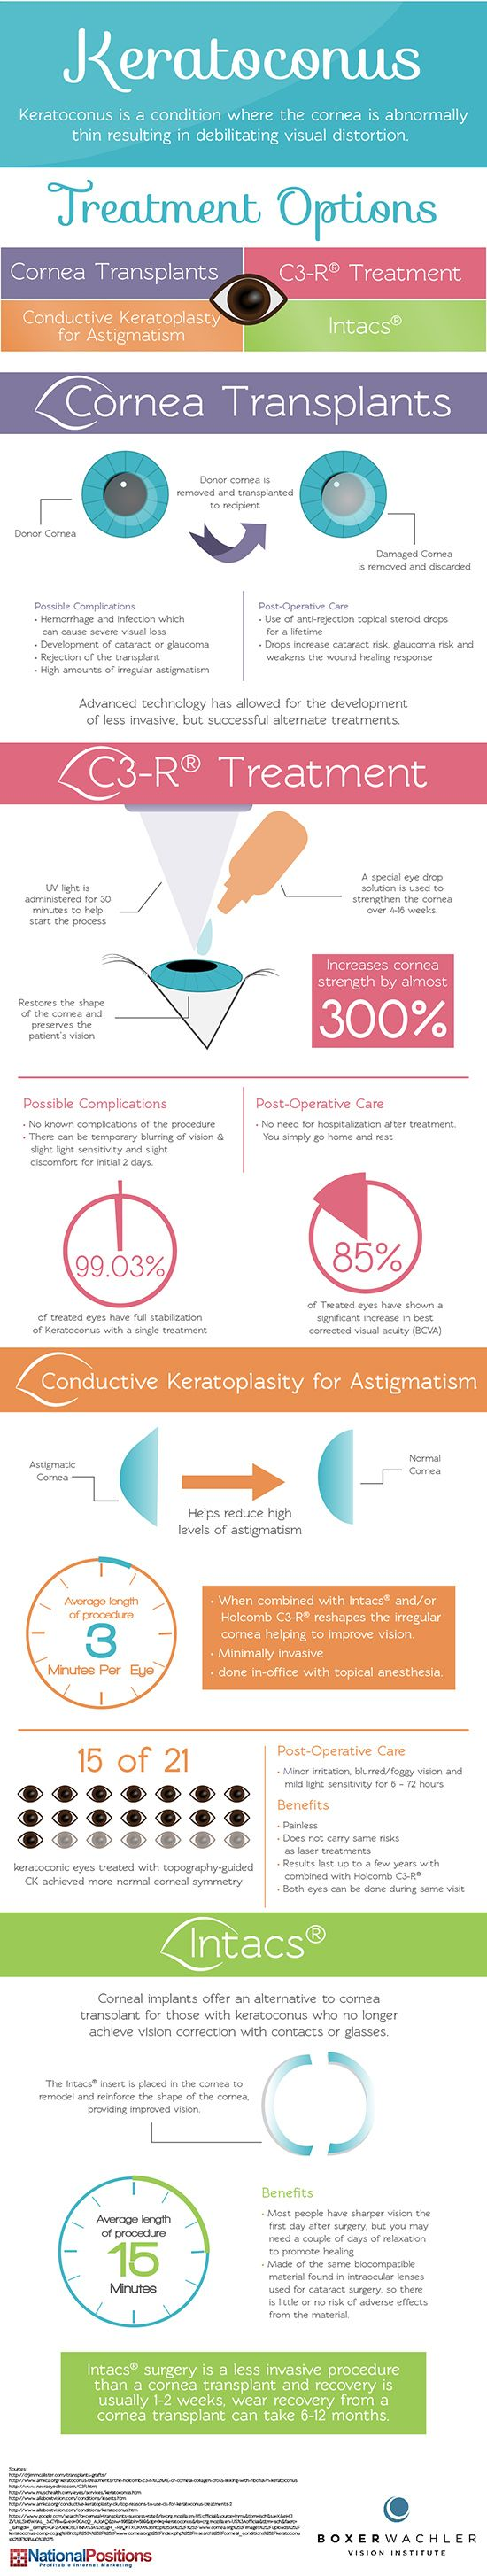 Keratoconus Treatment Options - What possible treatments are available for Keratoconus? This infographic gives a breakdown of both invasive and noninvasive procedures.   - sponsored